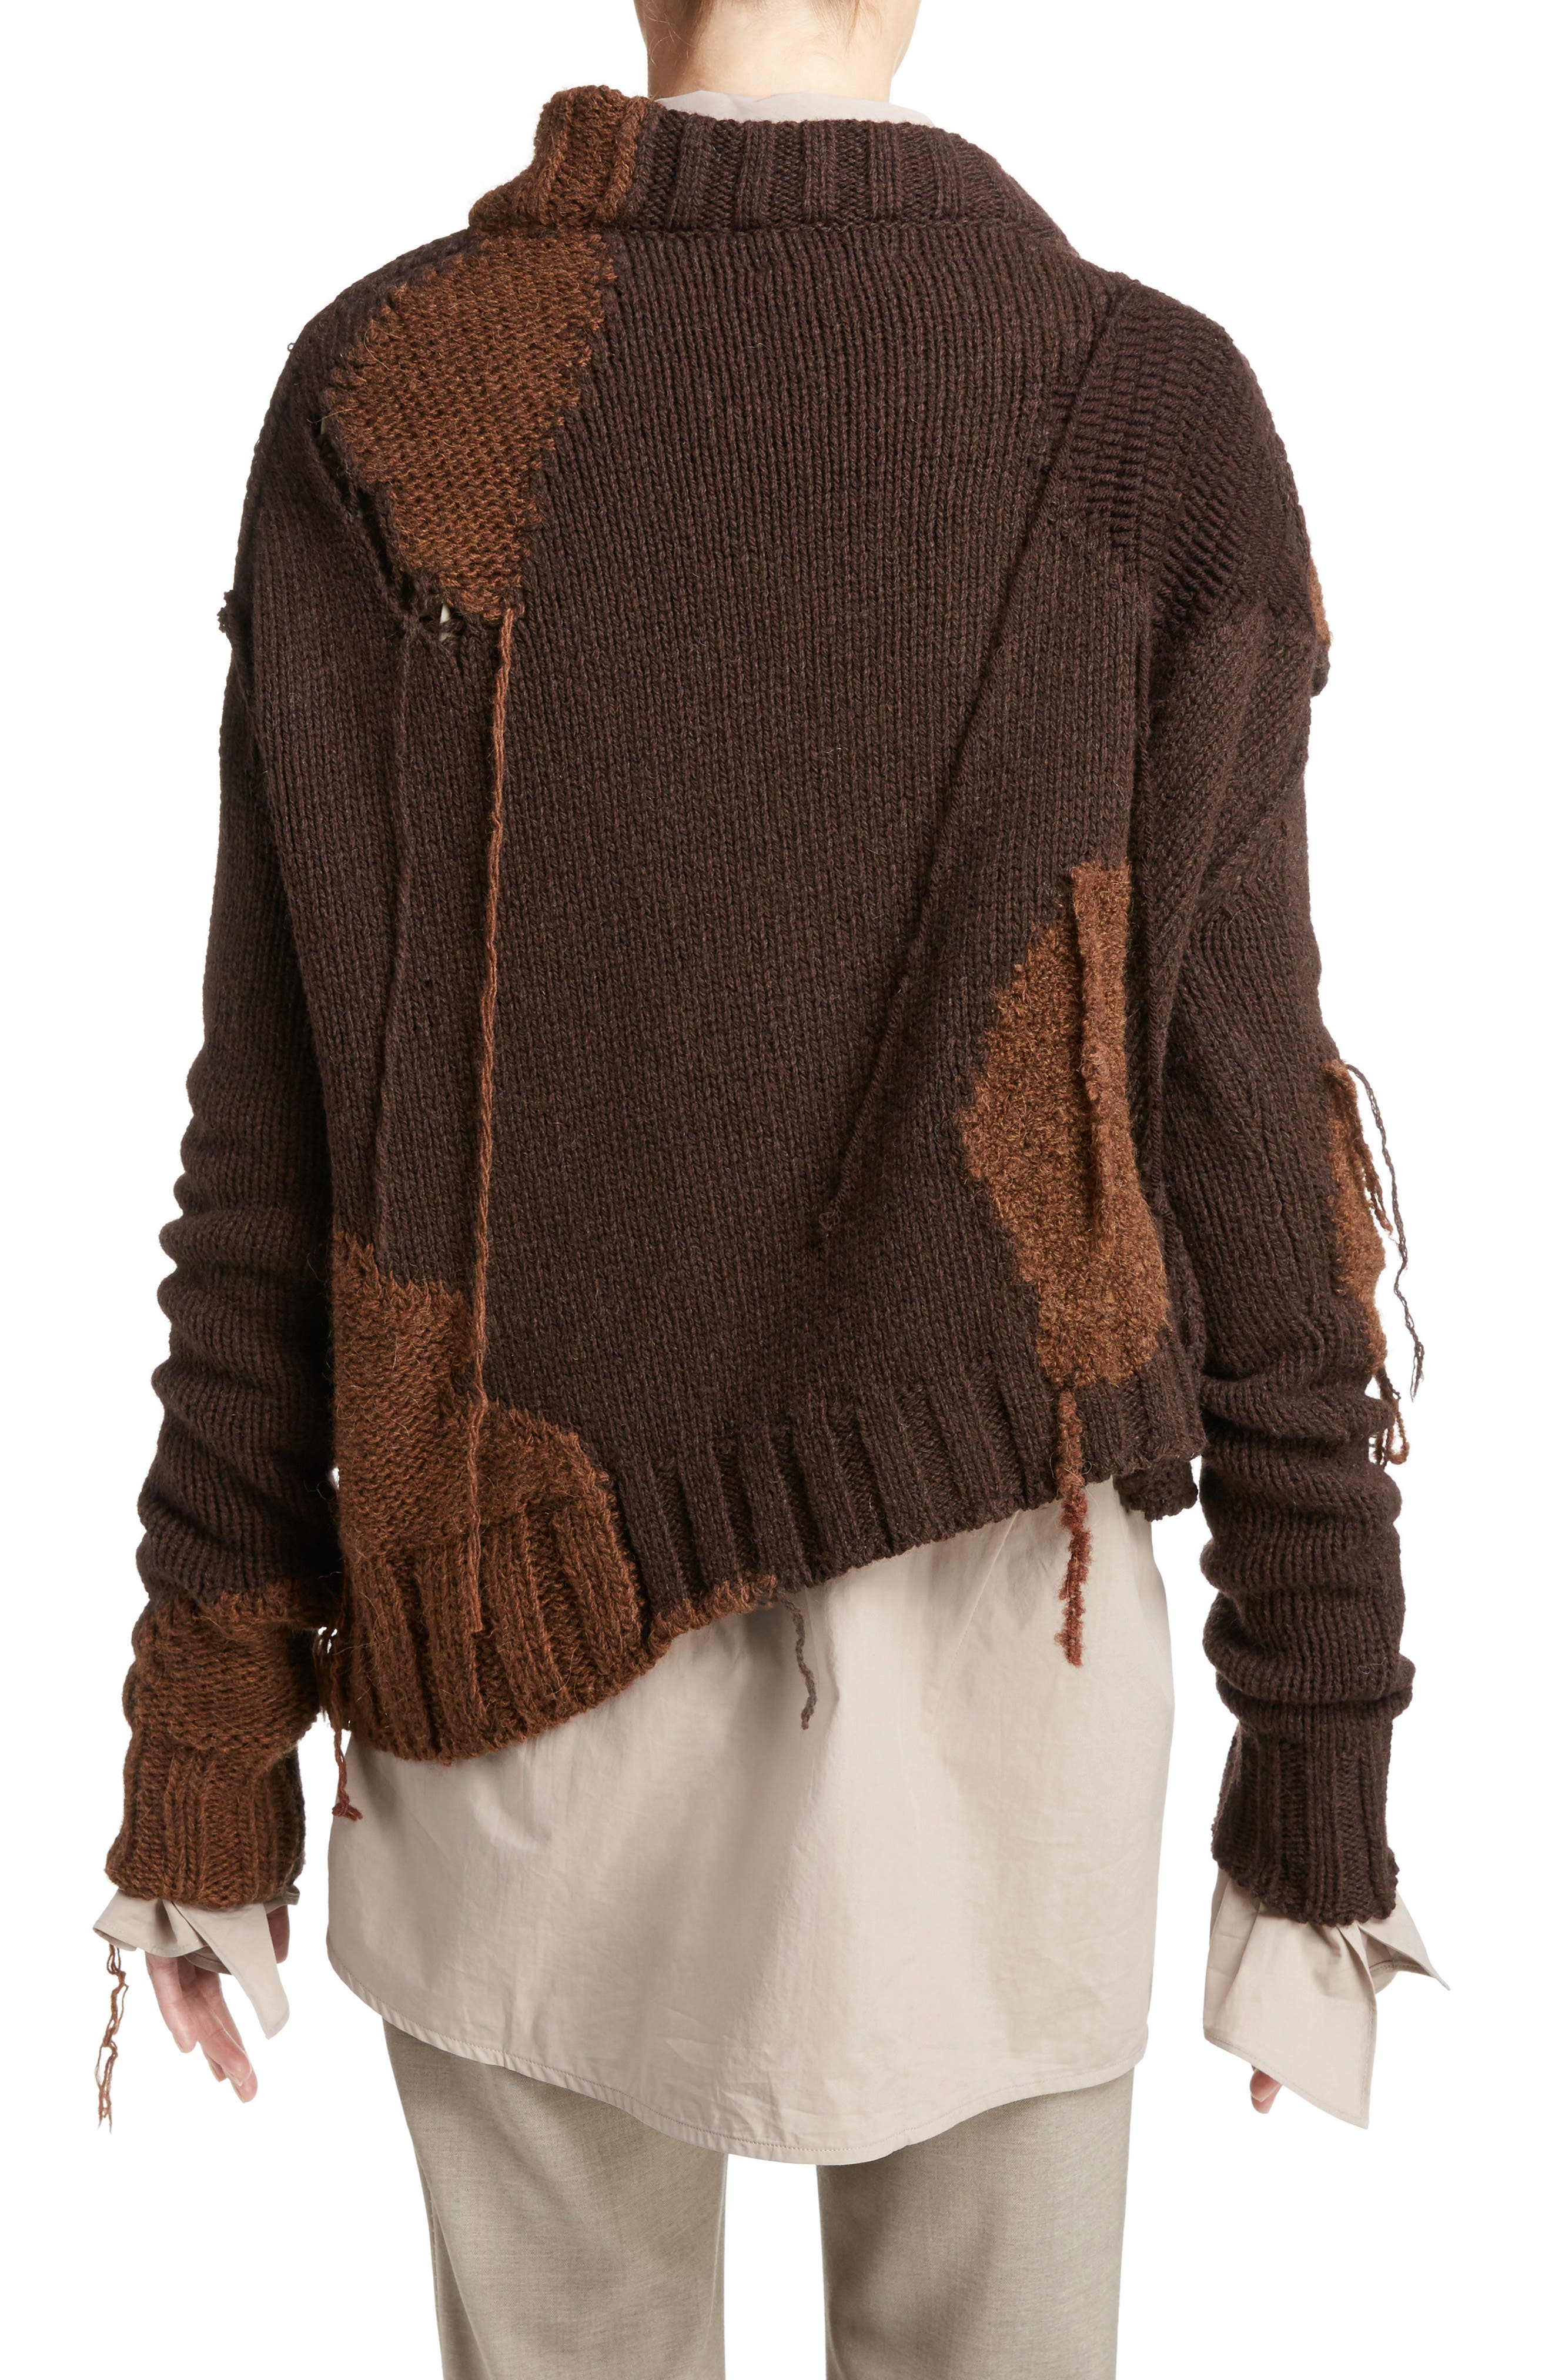 Ovira Distressed Patchwork Sweater,                             Alternate thumbnail 2, color,                             200